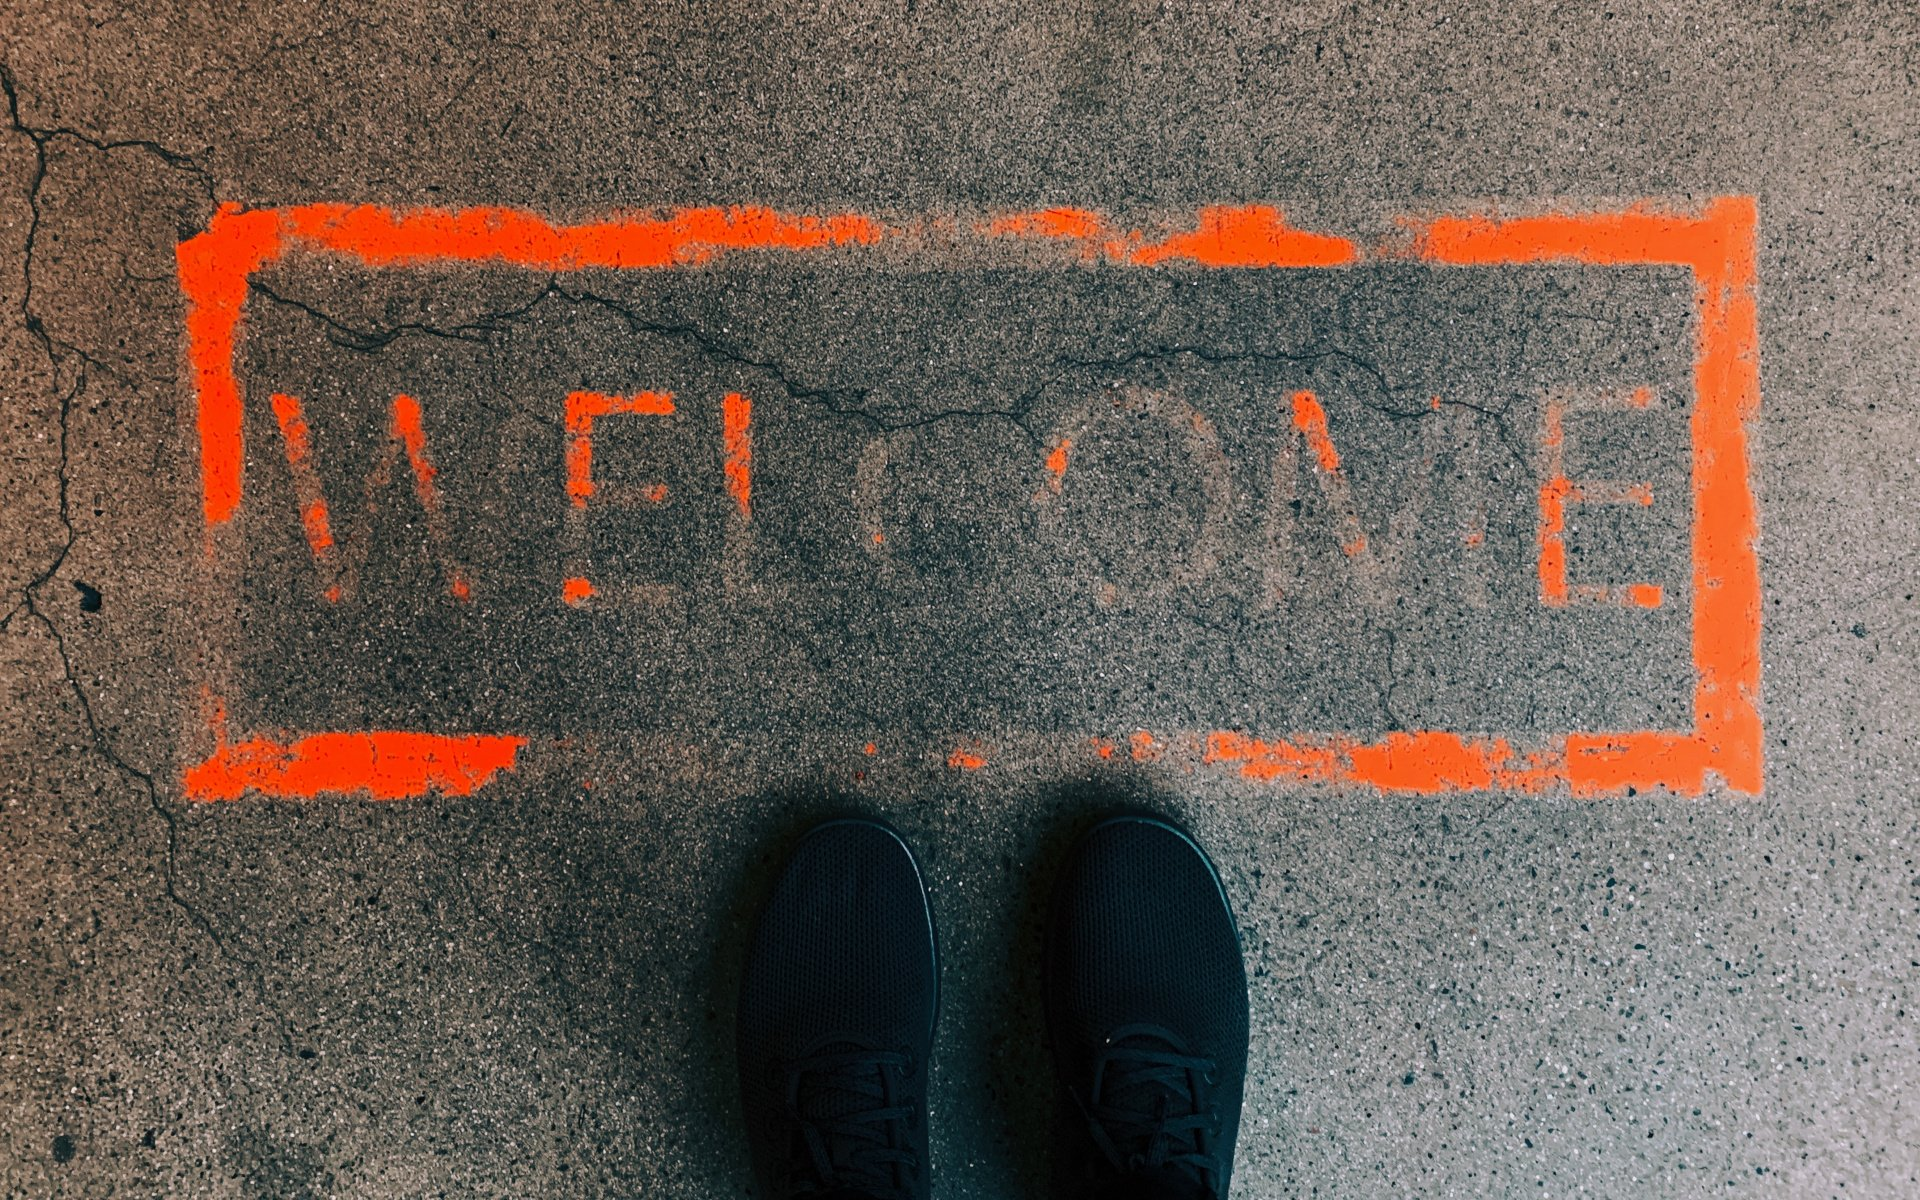 Welcome Wrote In Red Paint On A Concrete Floor With Black Shoes